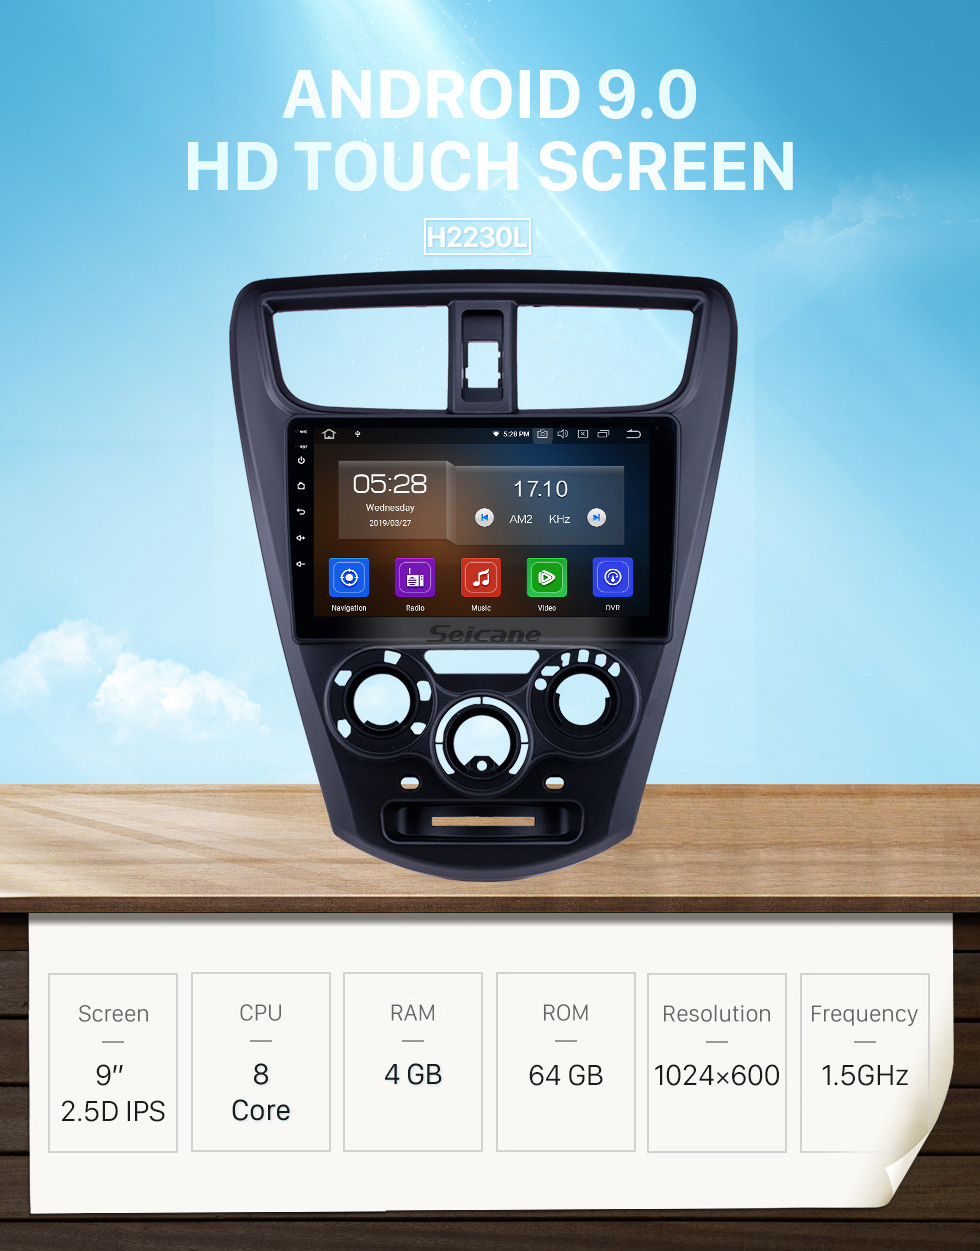 Seicane OEM 9 pouces Android 9.0 Radio pour 2015 Perodua Axia Bluetooth WIFI HD Écran Tactile Musique GPS Navigation Carplay USB support Digital TV TPMS